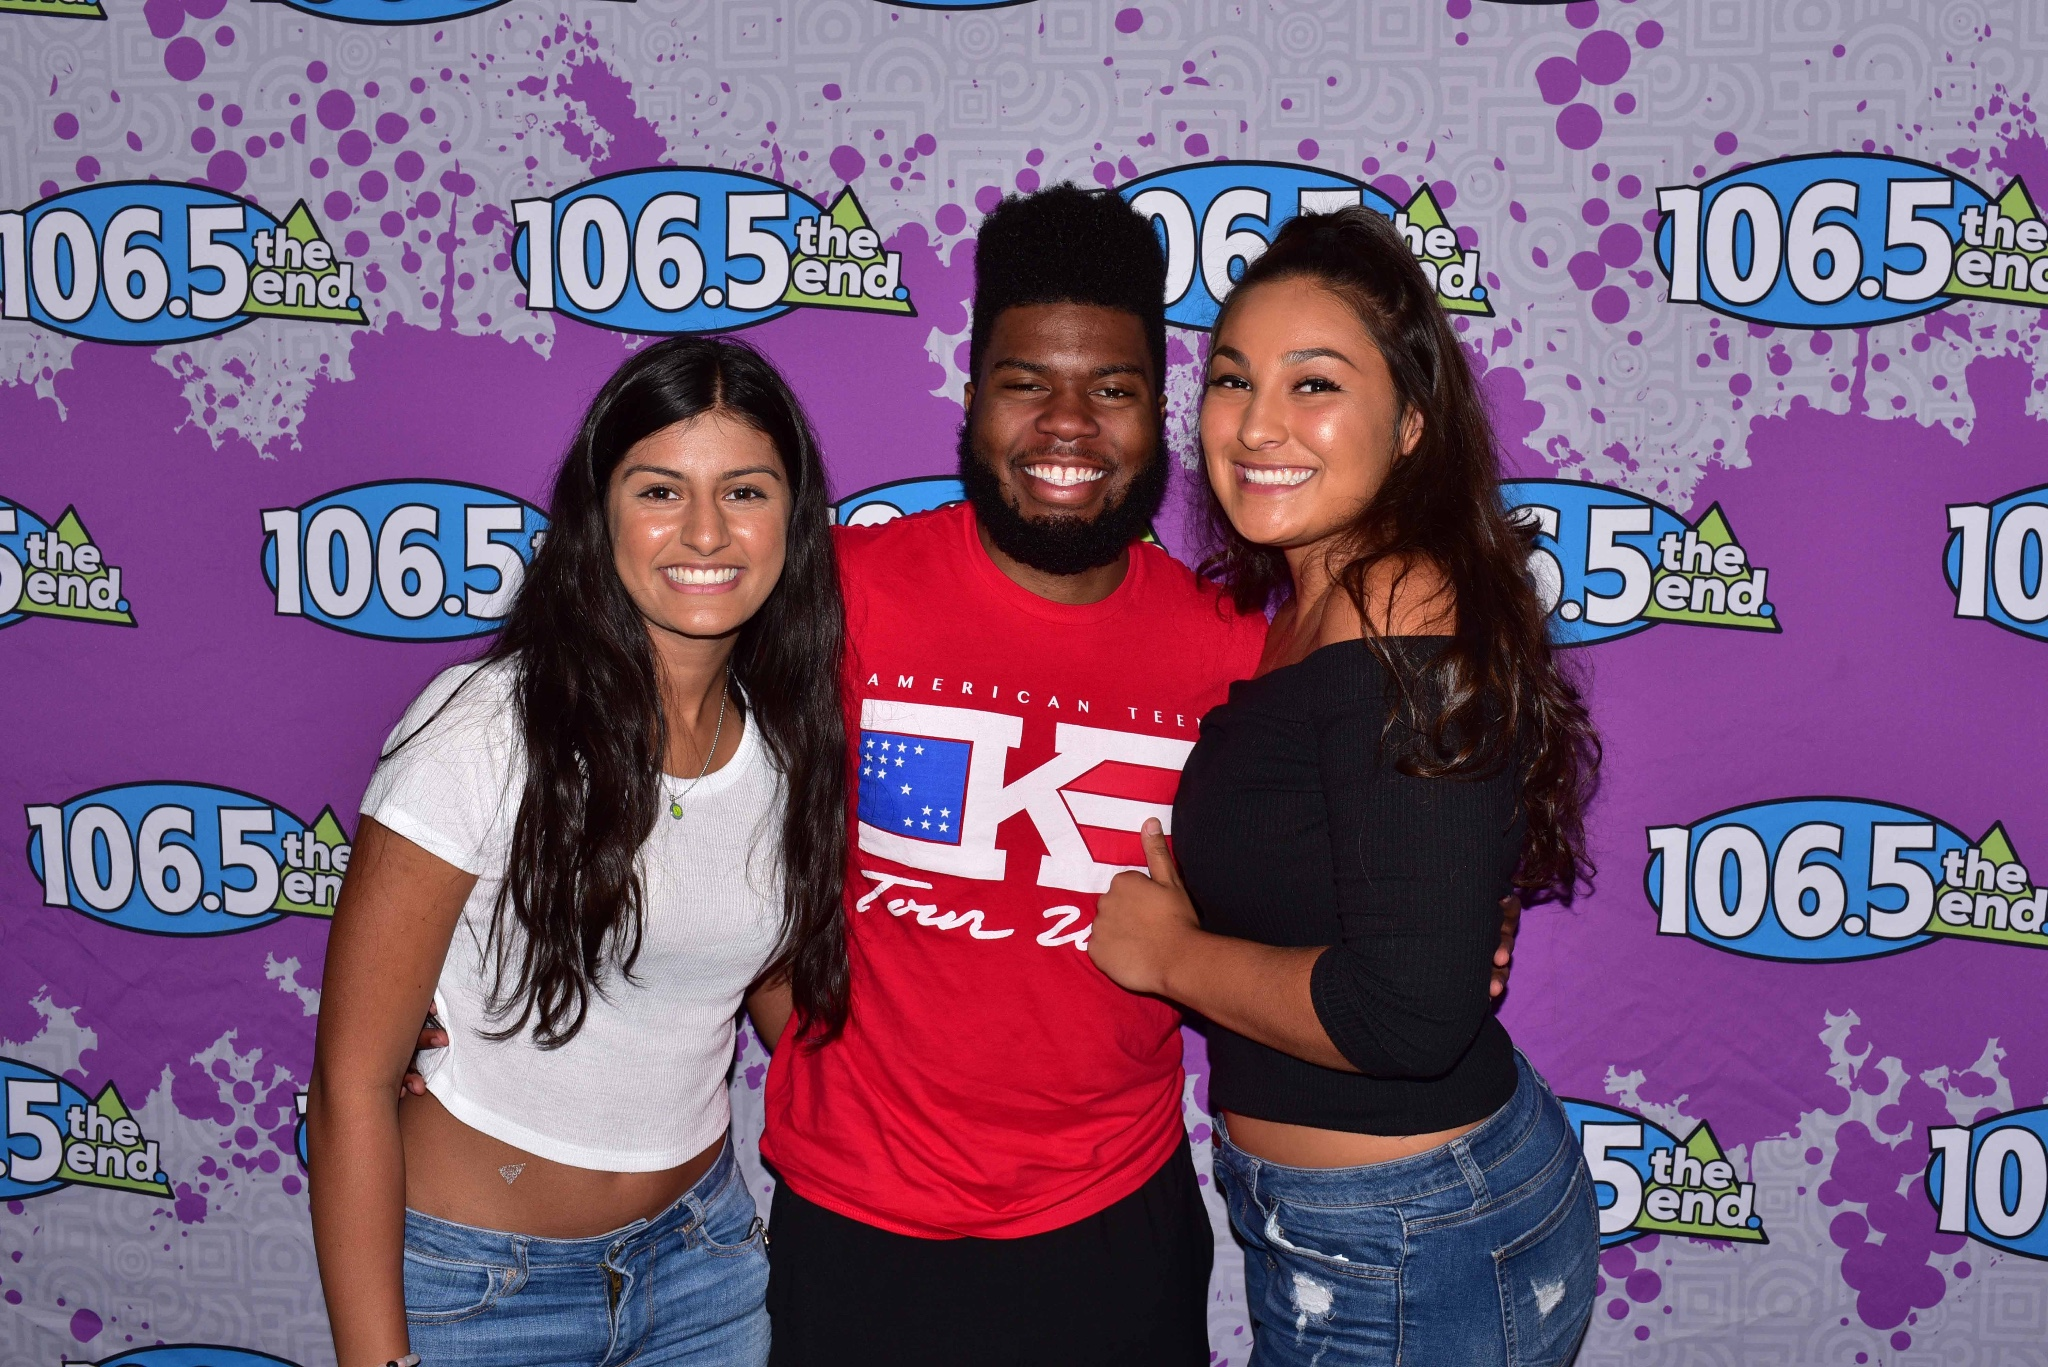 Khalid Meet And Greet End Online 1065 The End